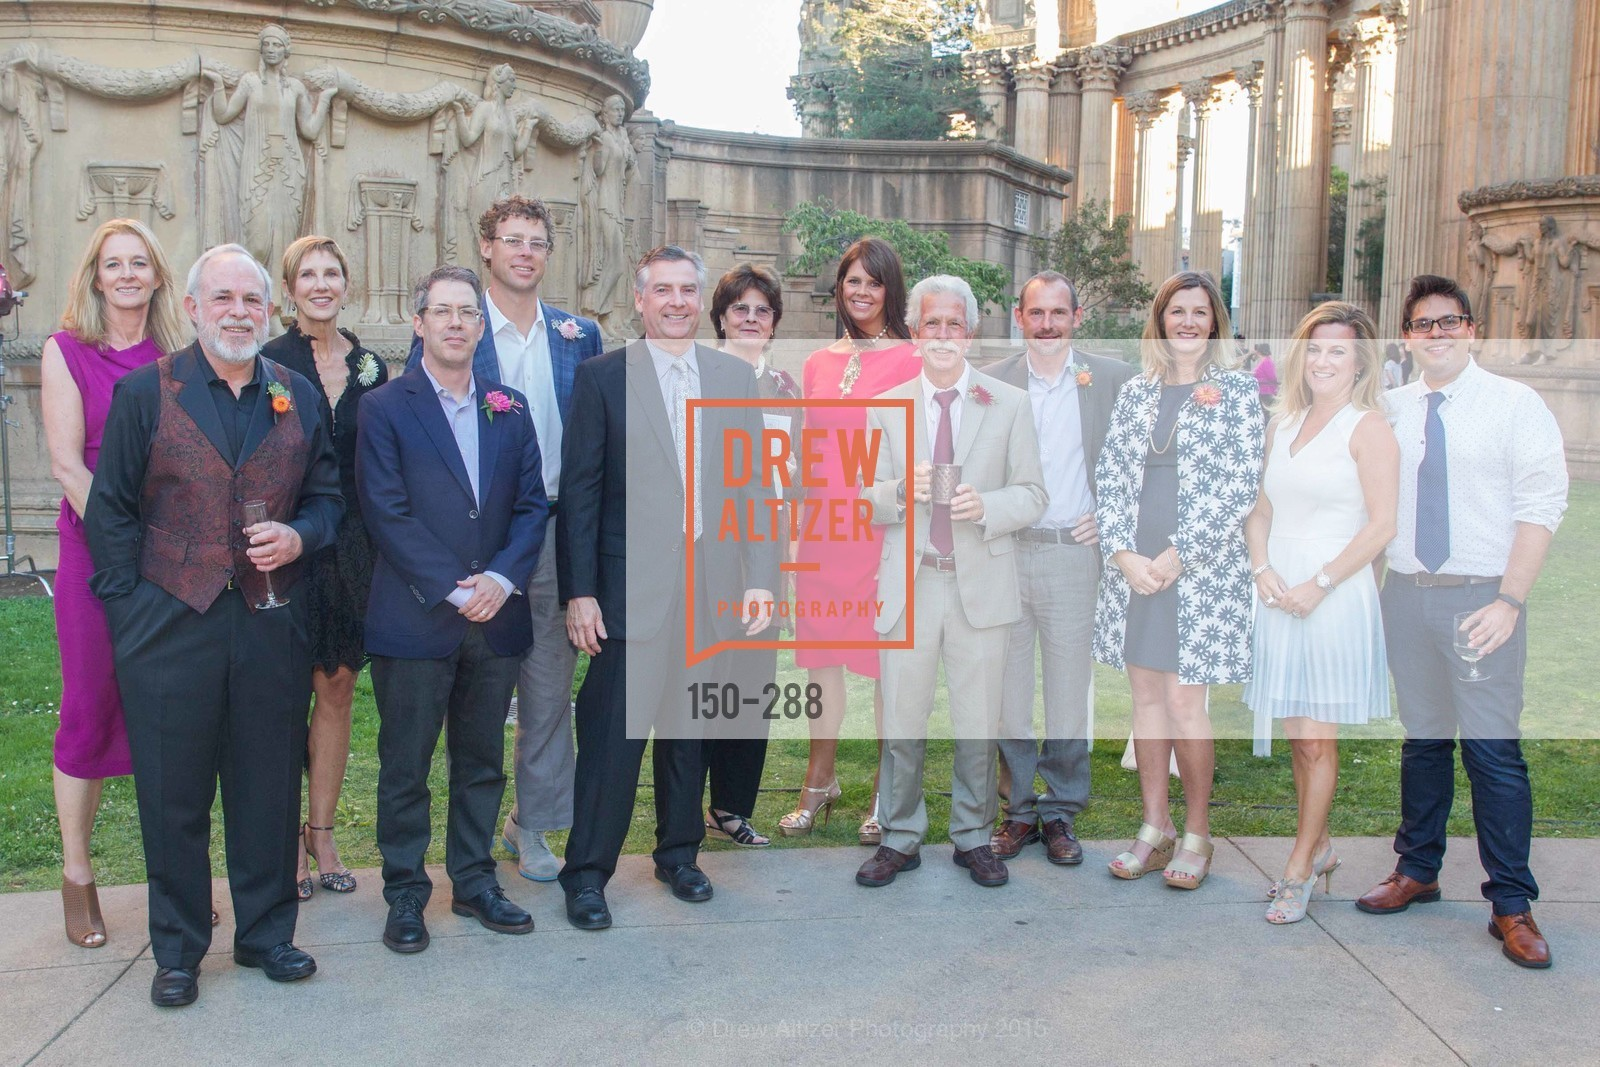 Tricia Sellman, Glenn Snyder, Rosemary Cameron, Ken Weber, Marcel Wilson, Kelly Nice, Christine Gardner, Phil Arnold, Chris Guillard, Nancy Conner, Carolyn Edwards, Party for the Parks 2015, Palace of Fine Arts. 3301 Lyon St, September 19th, 2015,Drew Altizer, Drew Altizer Photography, full-service event agency, private events, San Francisco photographer, photographer California